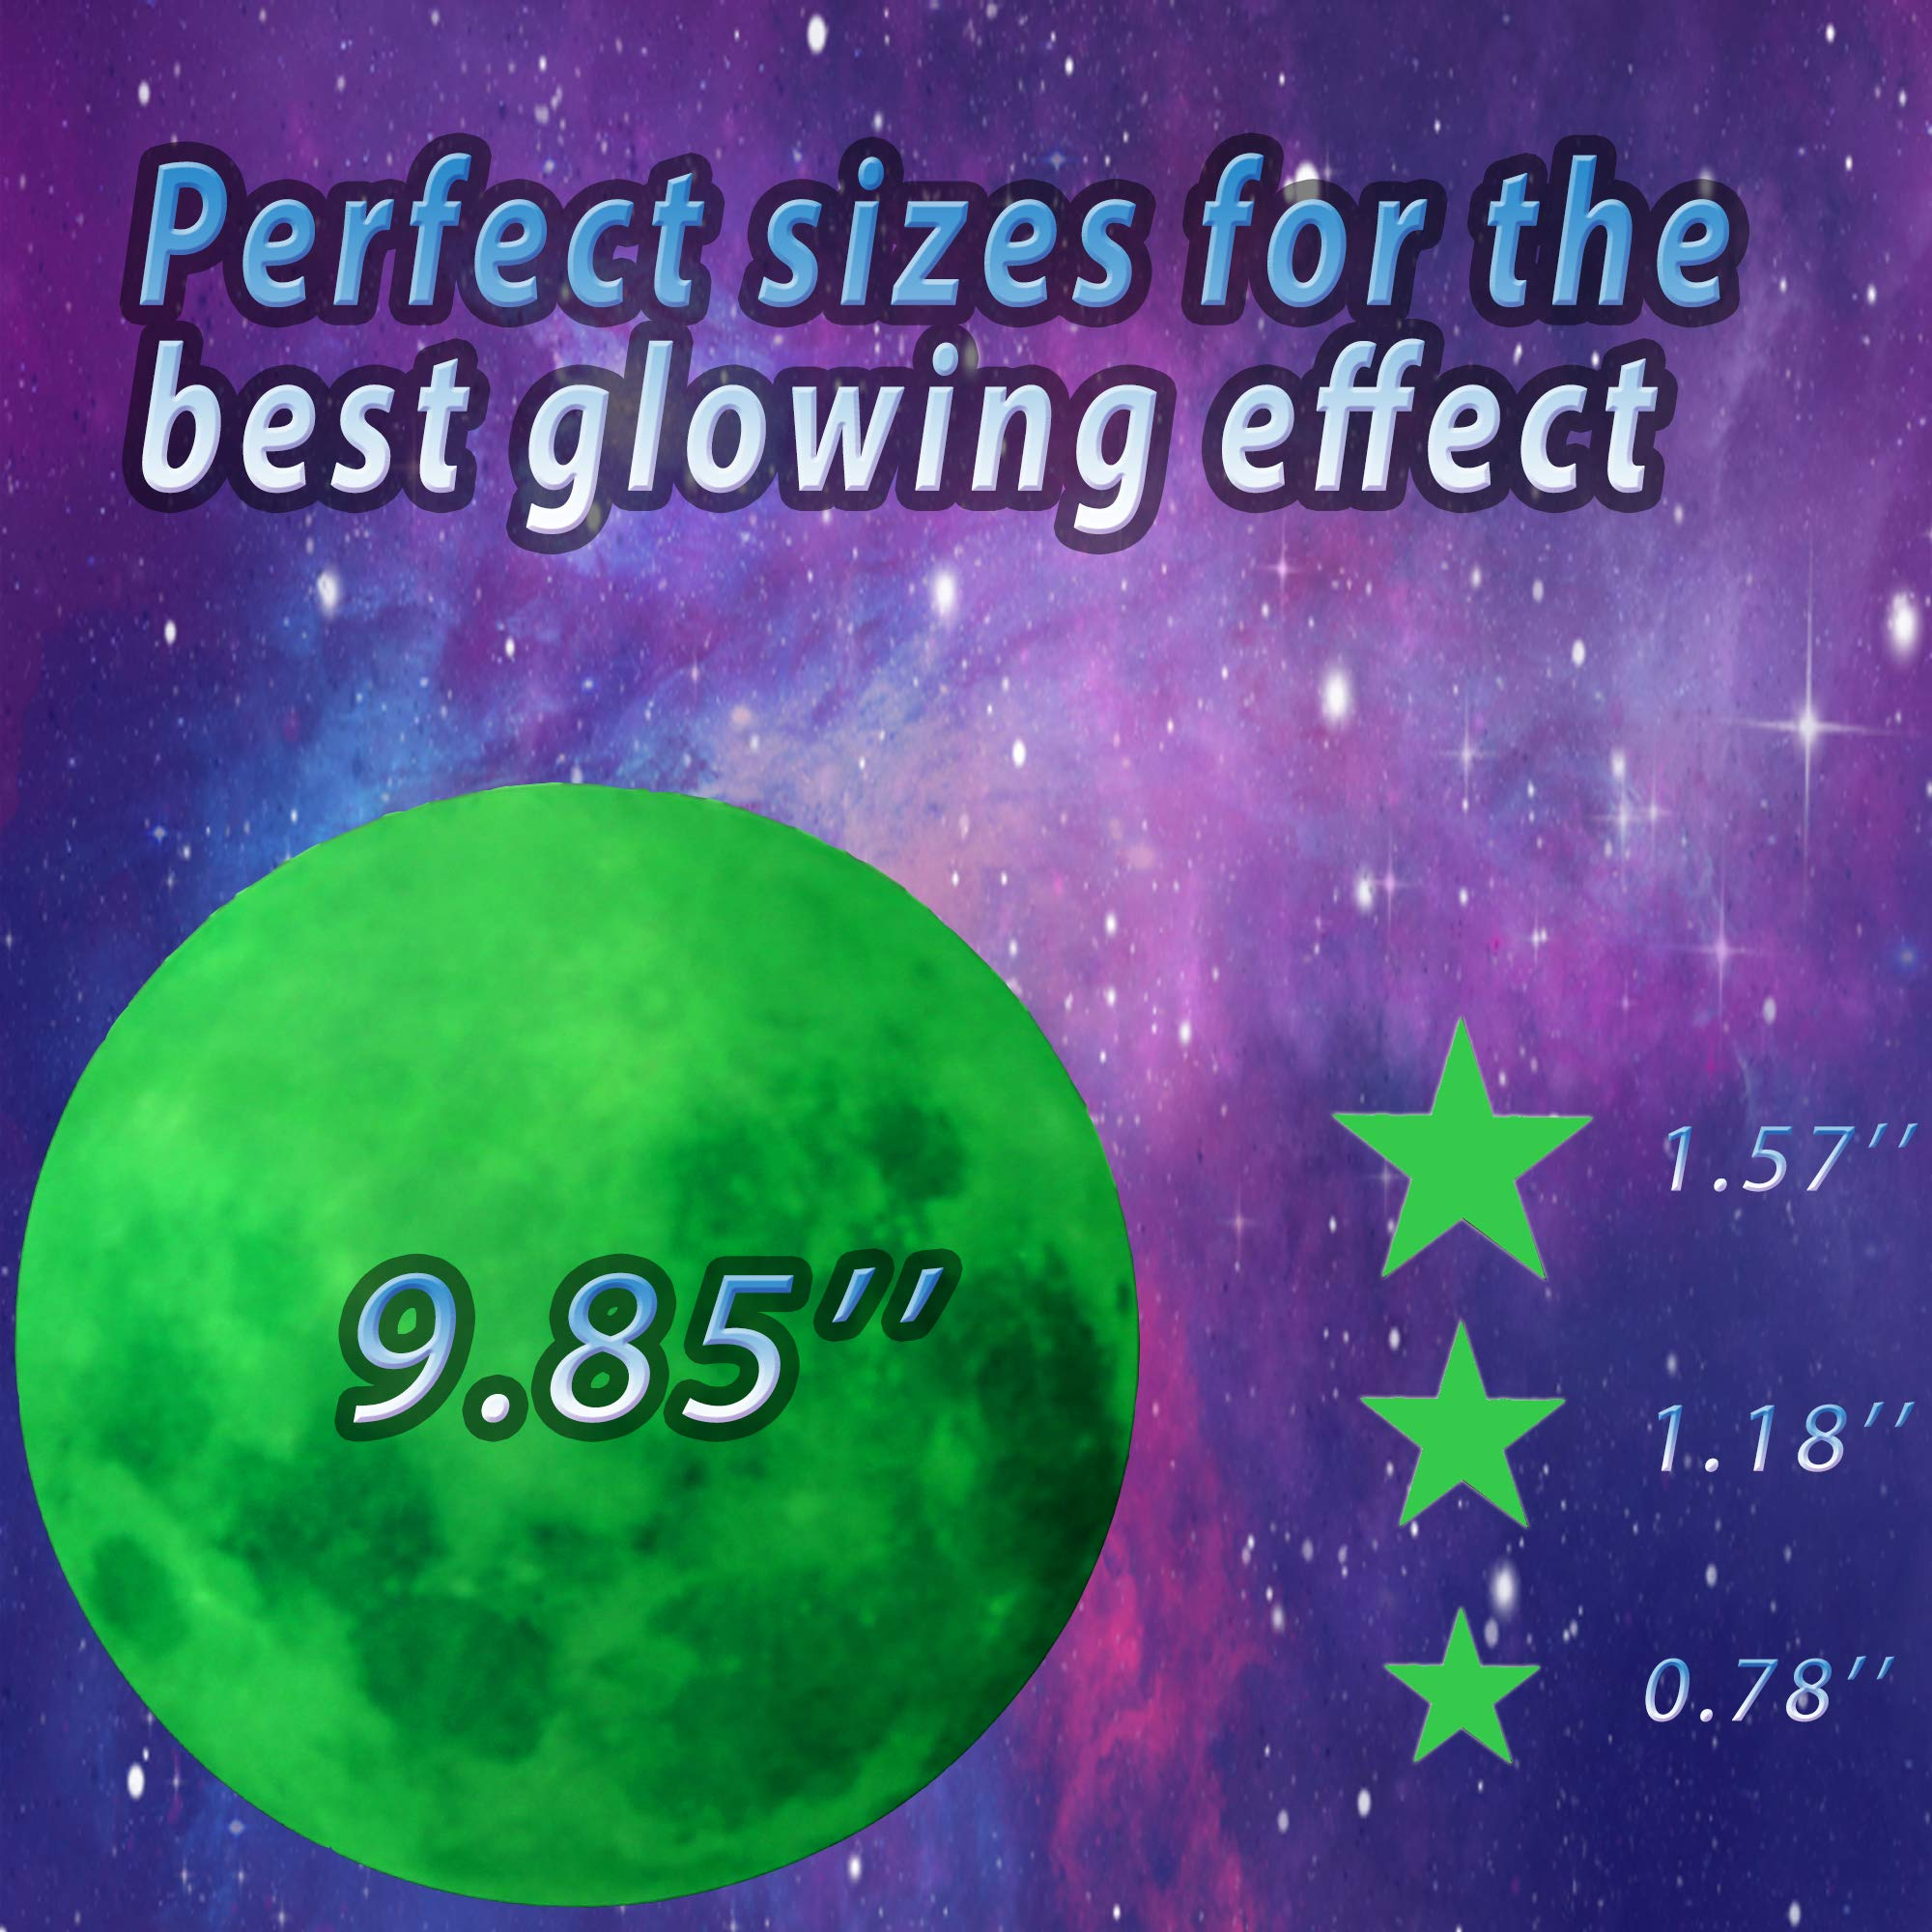 HORIECHALY Glow in The Dark Stars Wall Stickers, 221 Adhesive Bright and Realistic Stars and Full Moon for Starry Sky, Shining Decoration for Girls and Boys, Beautiful Wall Decals by HORIECHALY